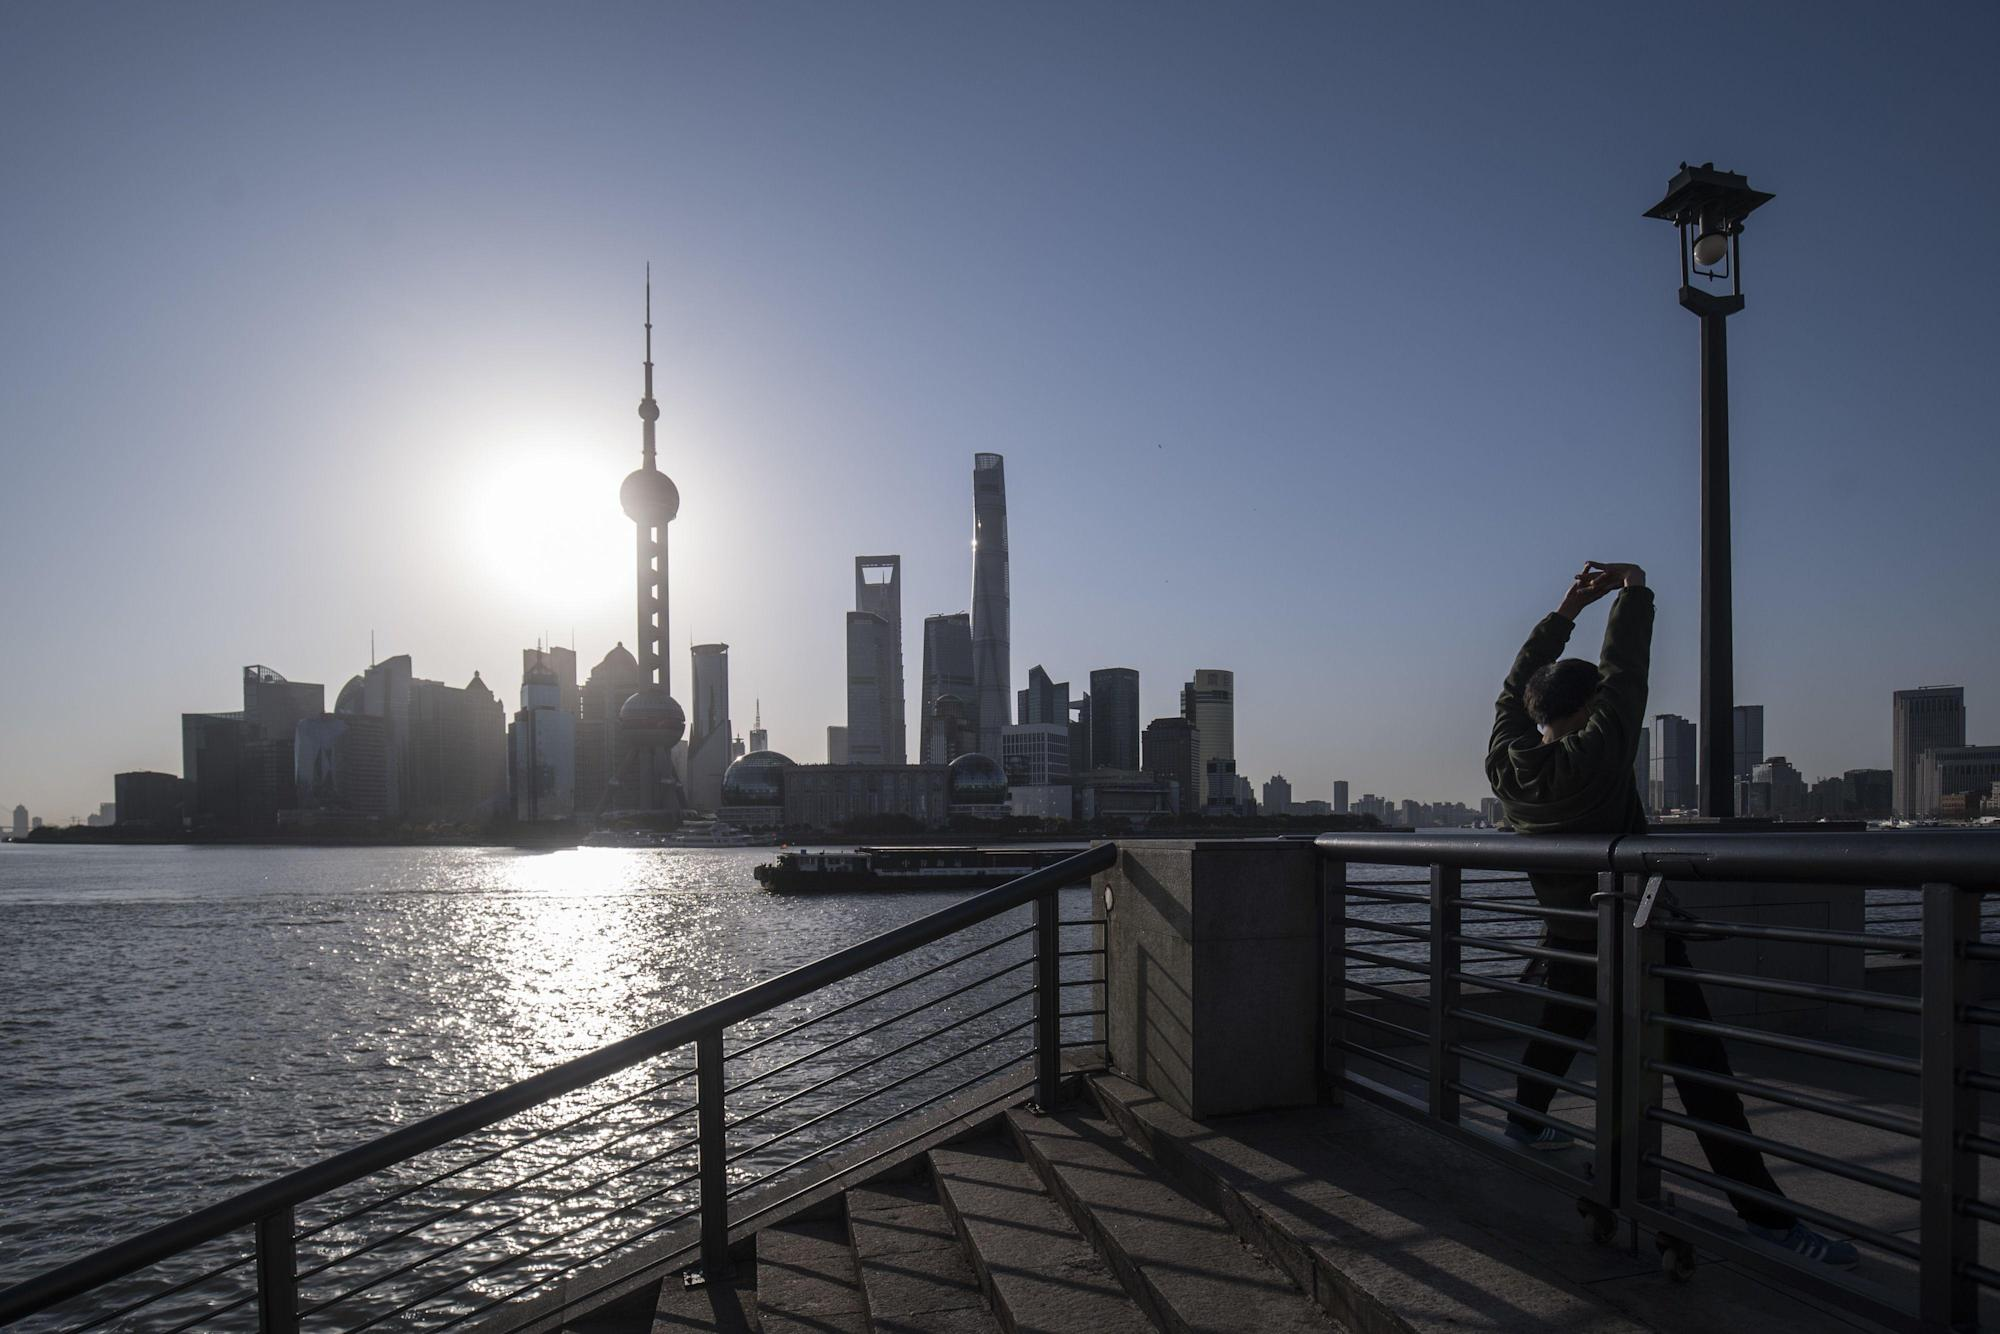 China State Media Seeks to Calm Investor Nerves After Stock Rout